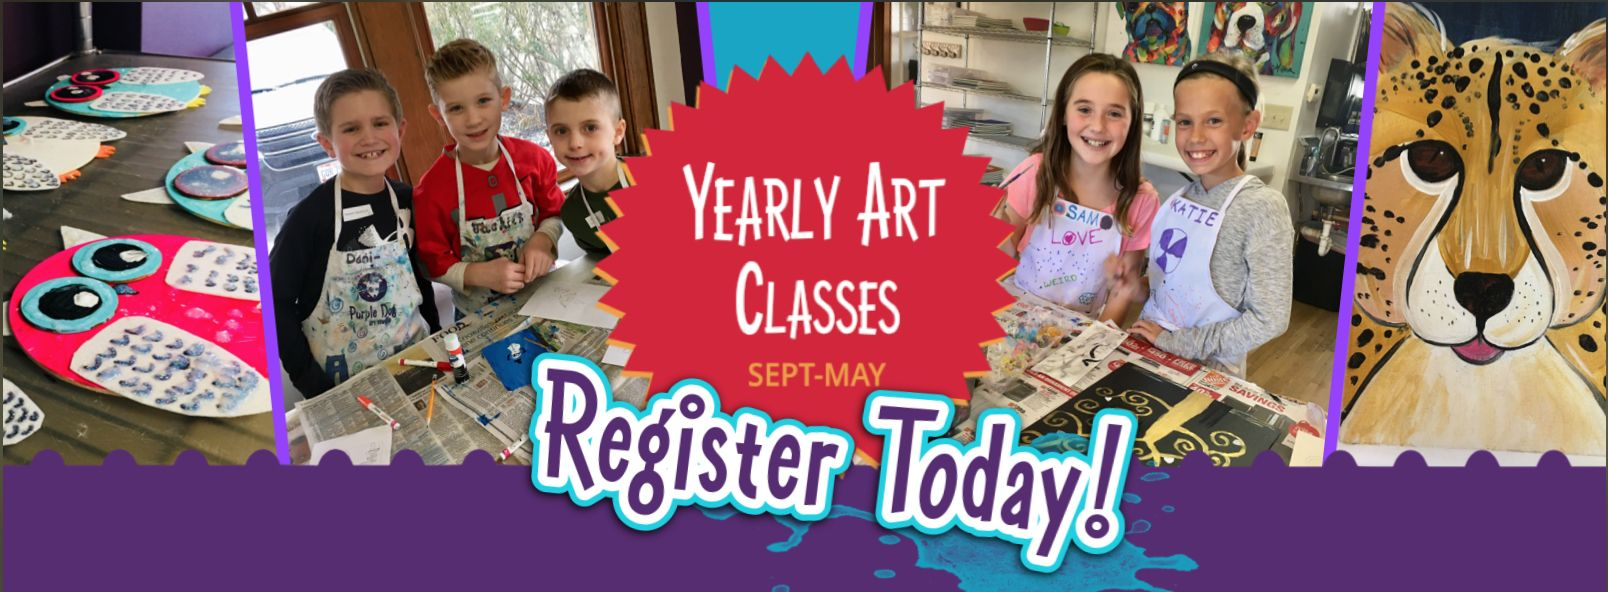 Yearly Art Classes